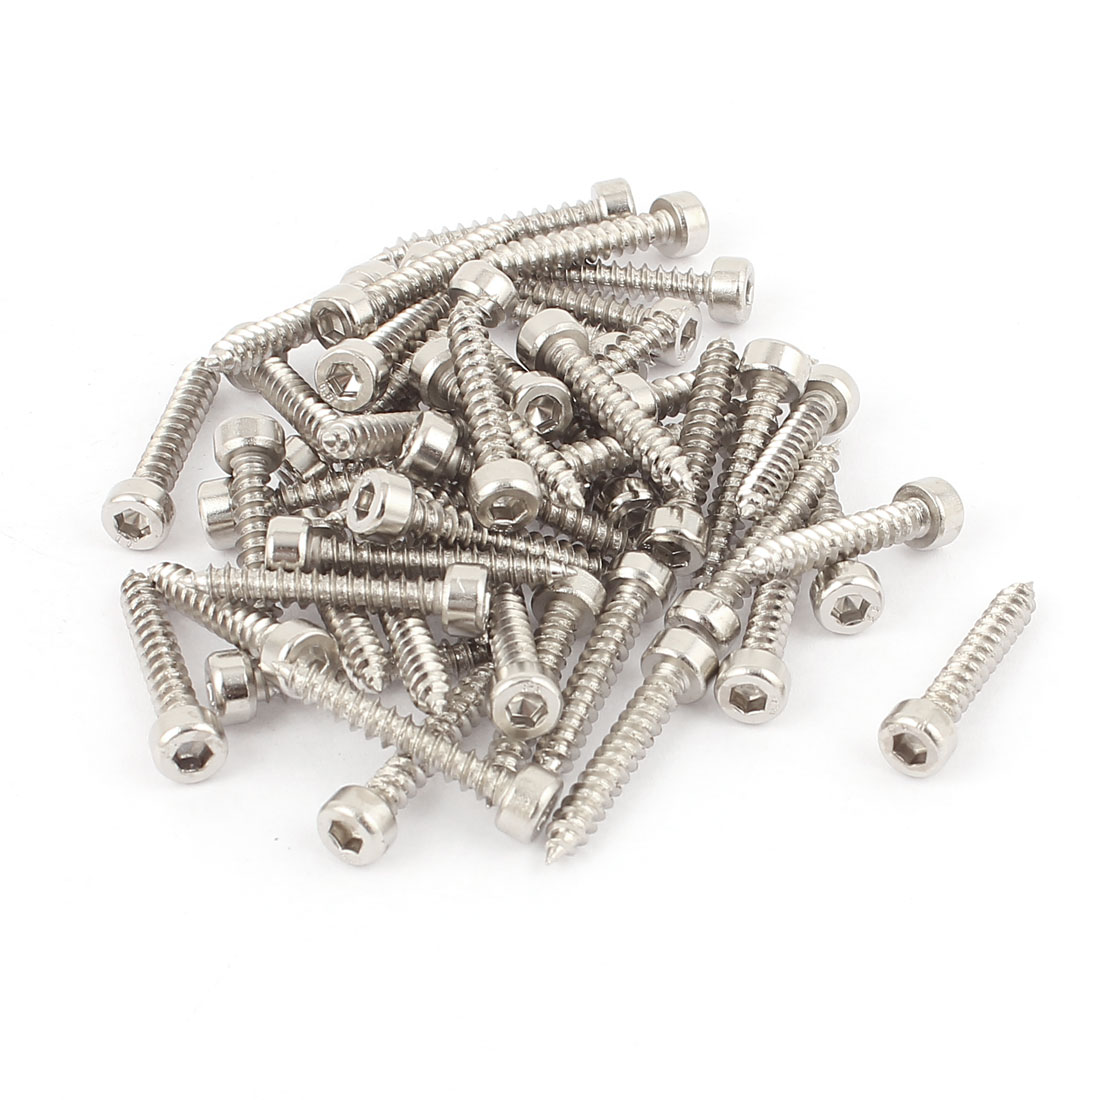 4mm x 25mm Male Thread Nickel Plated Hex Head Self Tapping Screws 50 Pcs